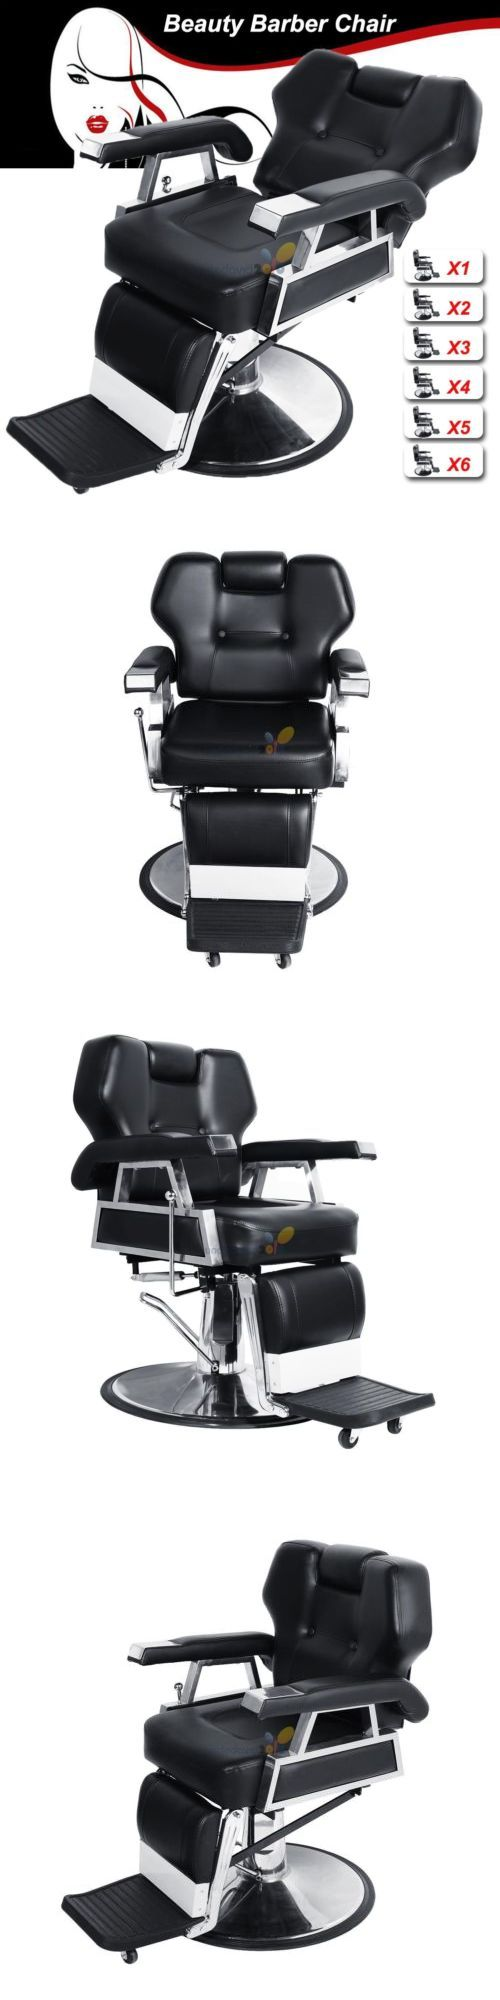 Stylist Stations And Furniture: New All Purpose Hydraulic Recline Barber  Chair Beauty Salon Spa Equipment